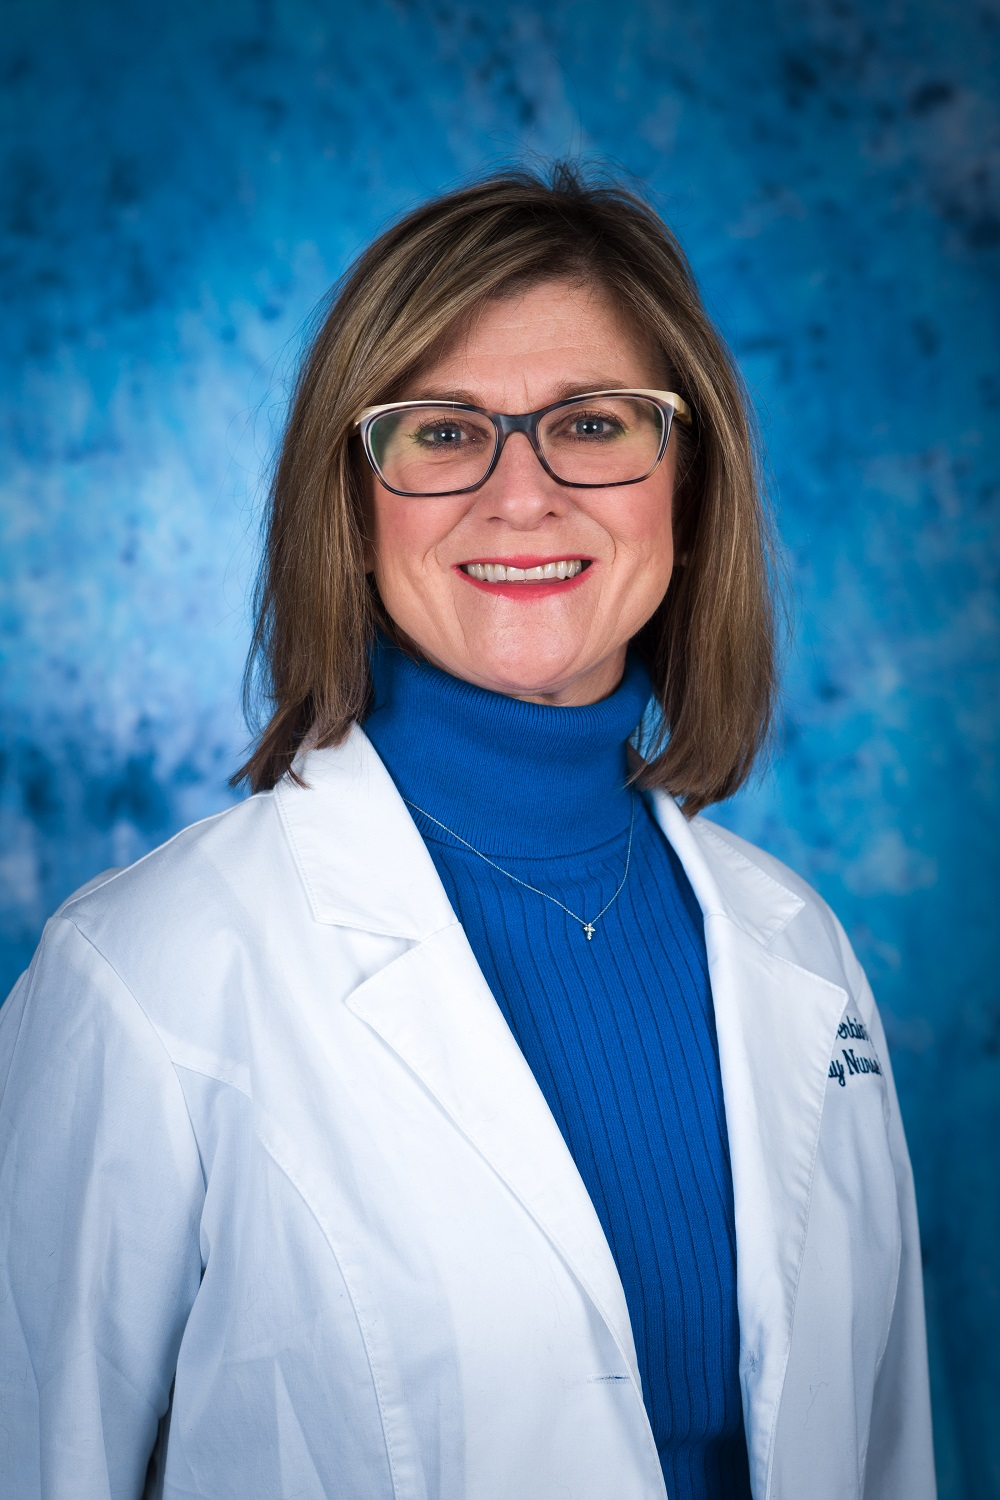 Mary F. Serbin, MSN, FNP-BC, member of the primary care team at Morristown Family Medicine